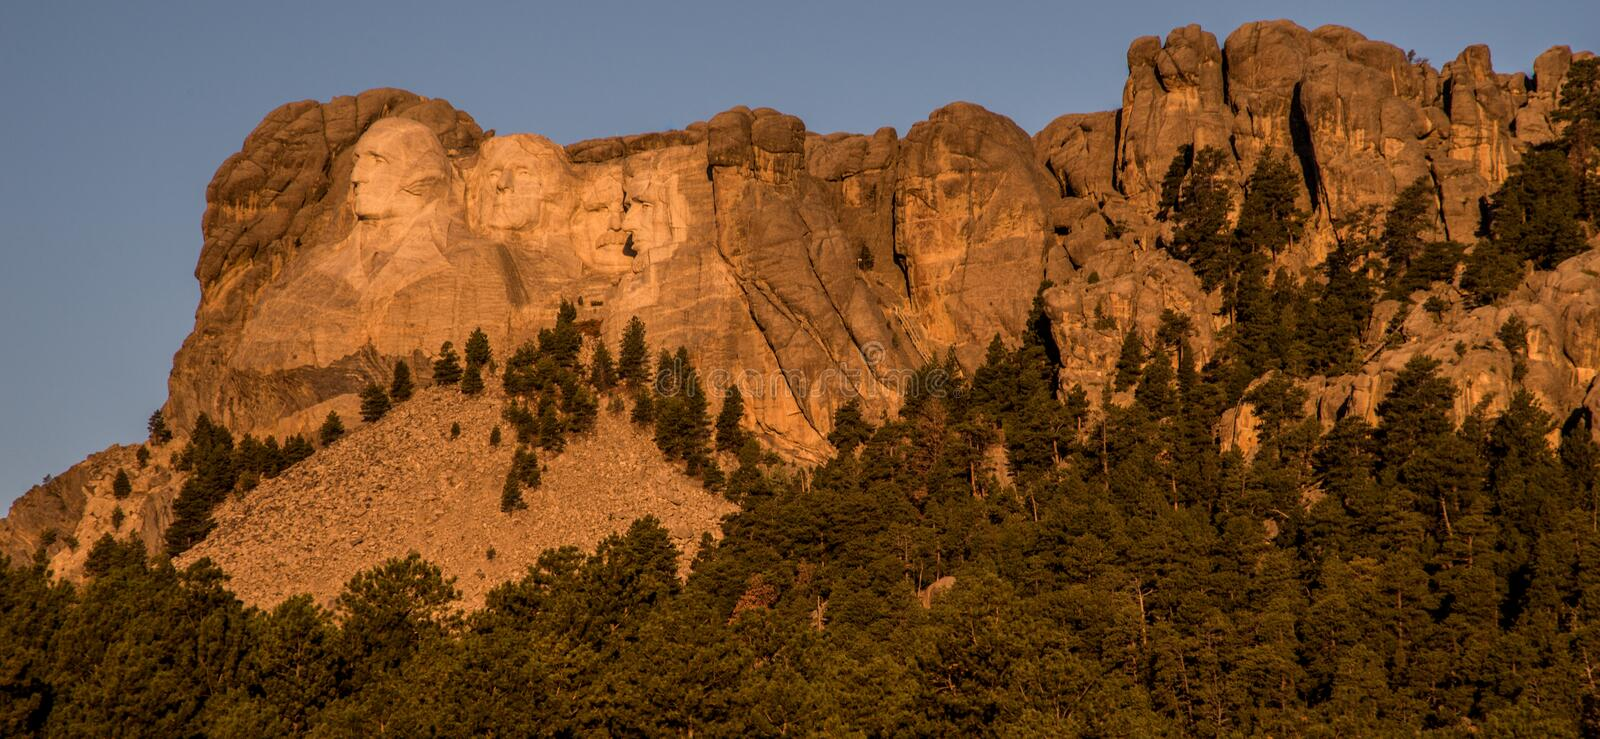 Sunrise at Mount Rushmore royalty free stock image